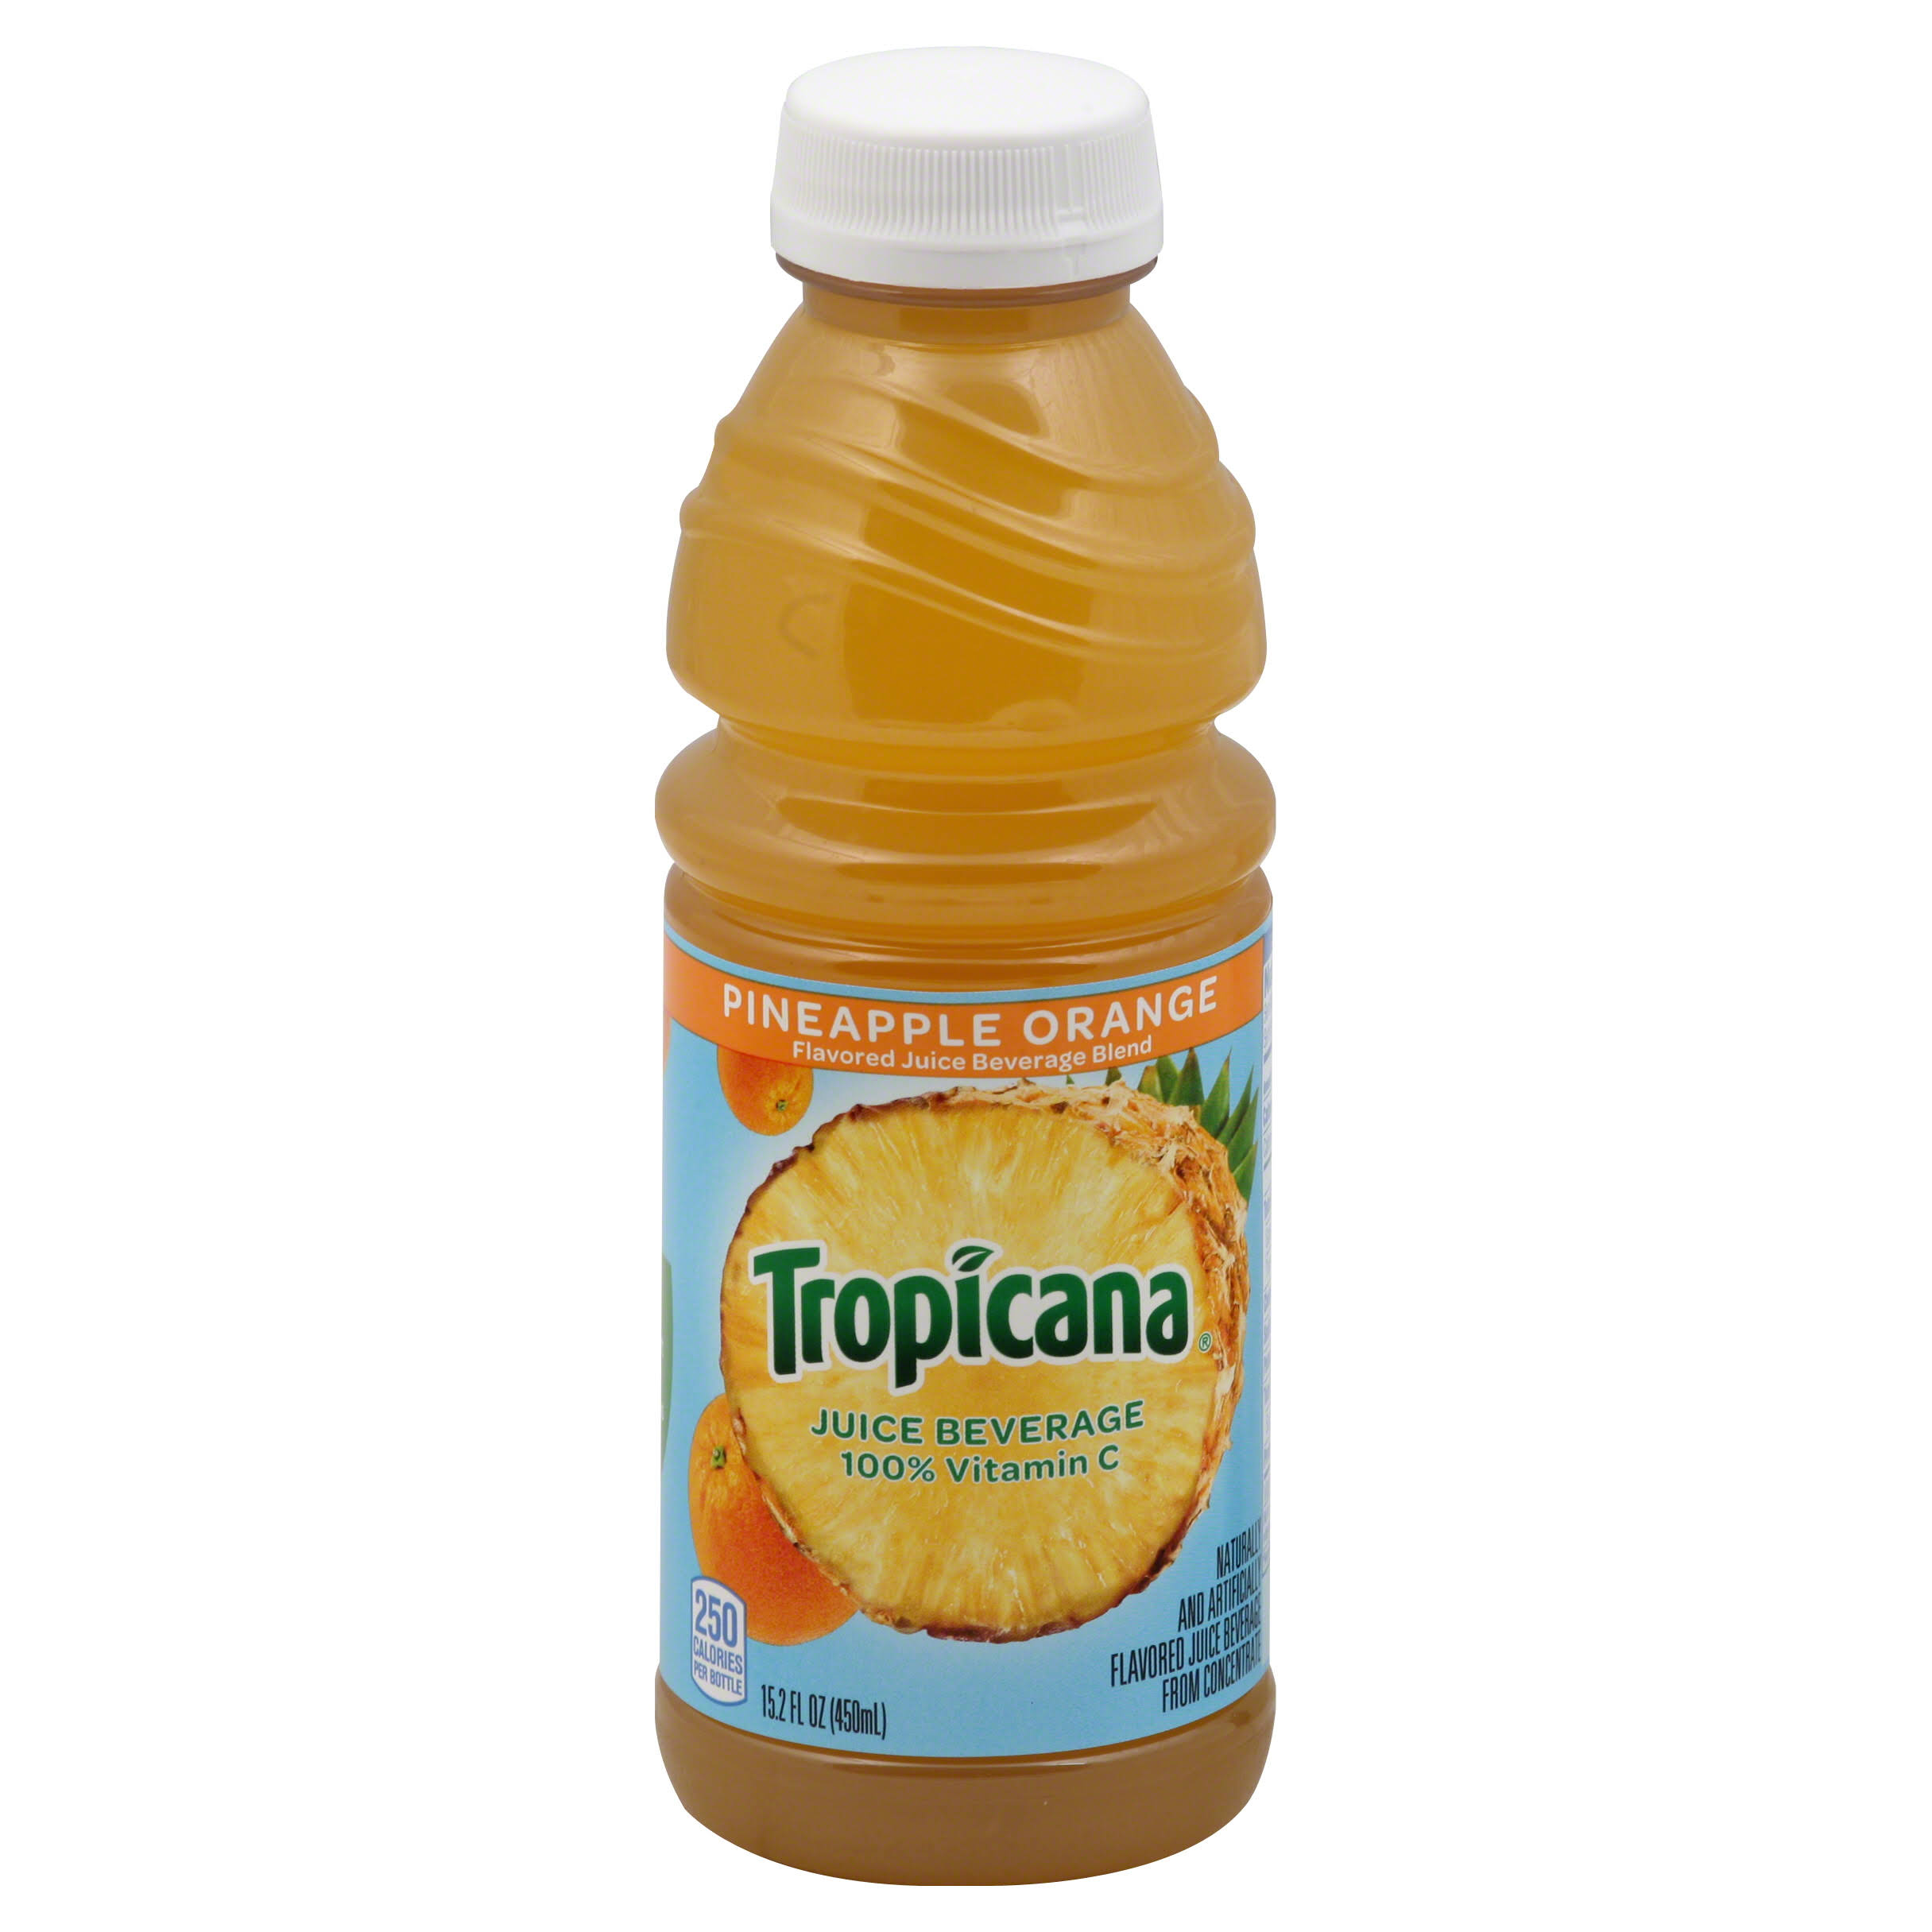 Tropicana Juice - Pineapple Orange, 15.2oz, Pack of 12